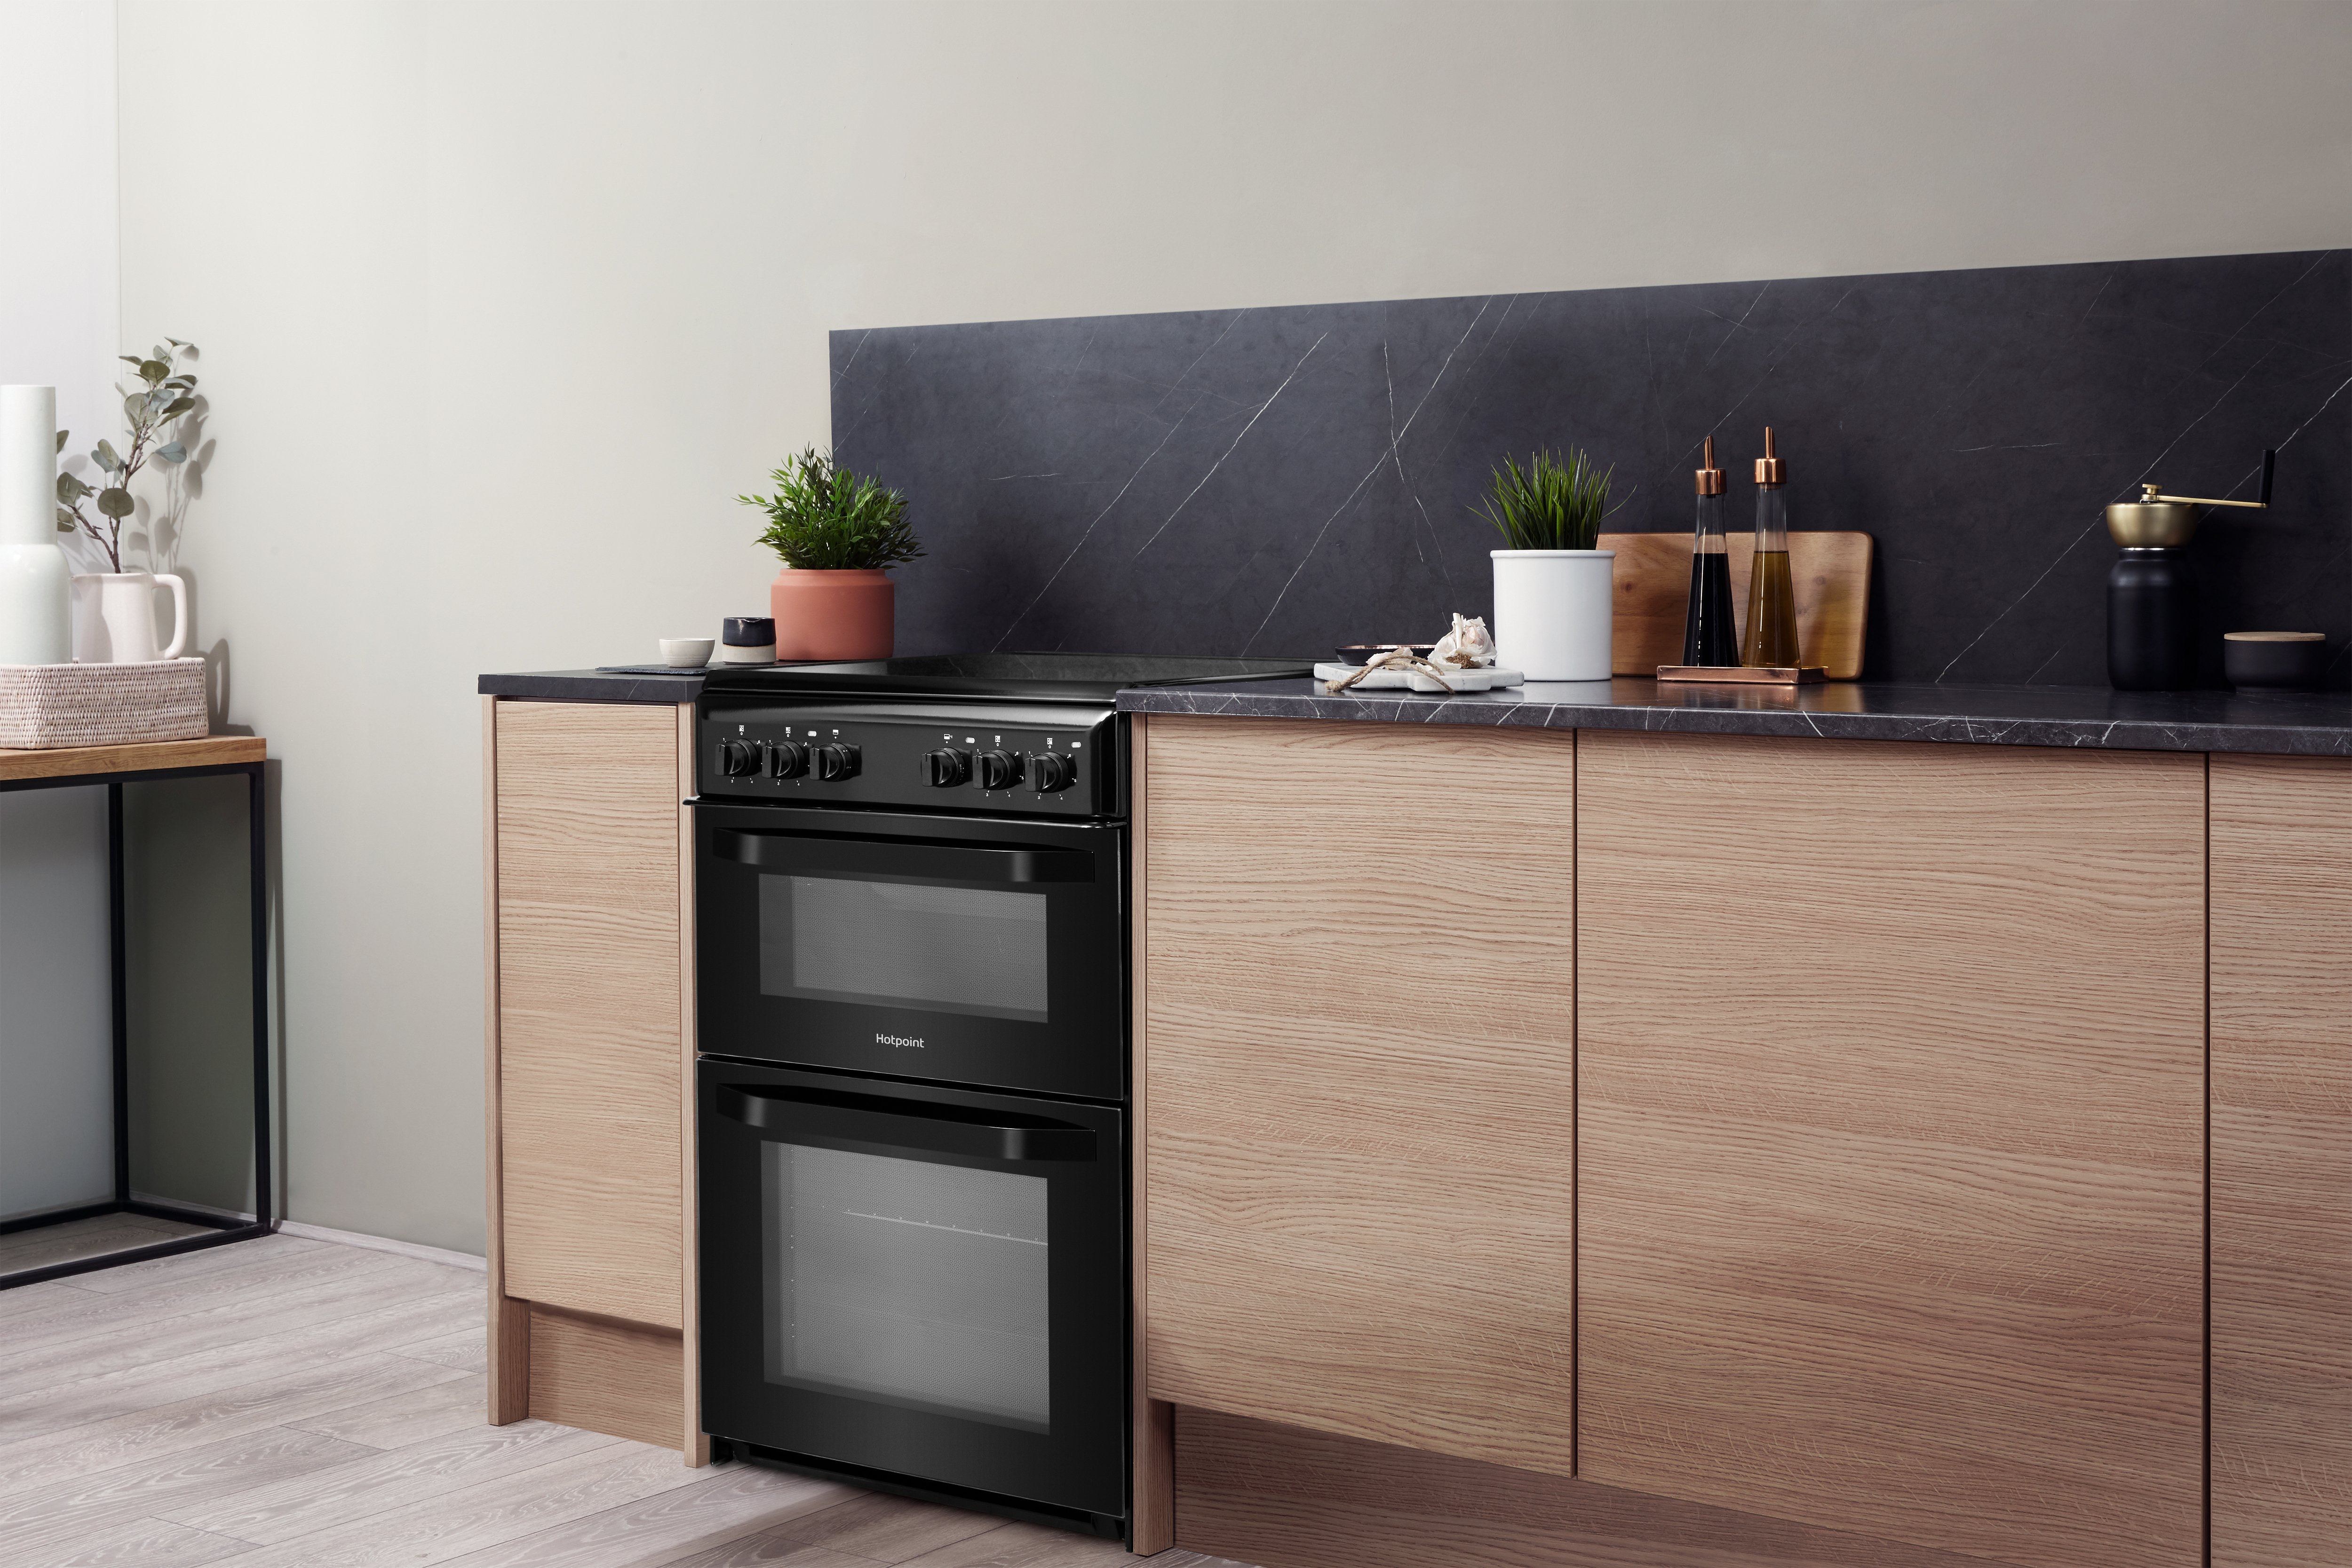 Hotpoint HD5V92KCB/UK Ceramic Electric Cooker Separate Grill